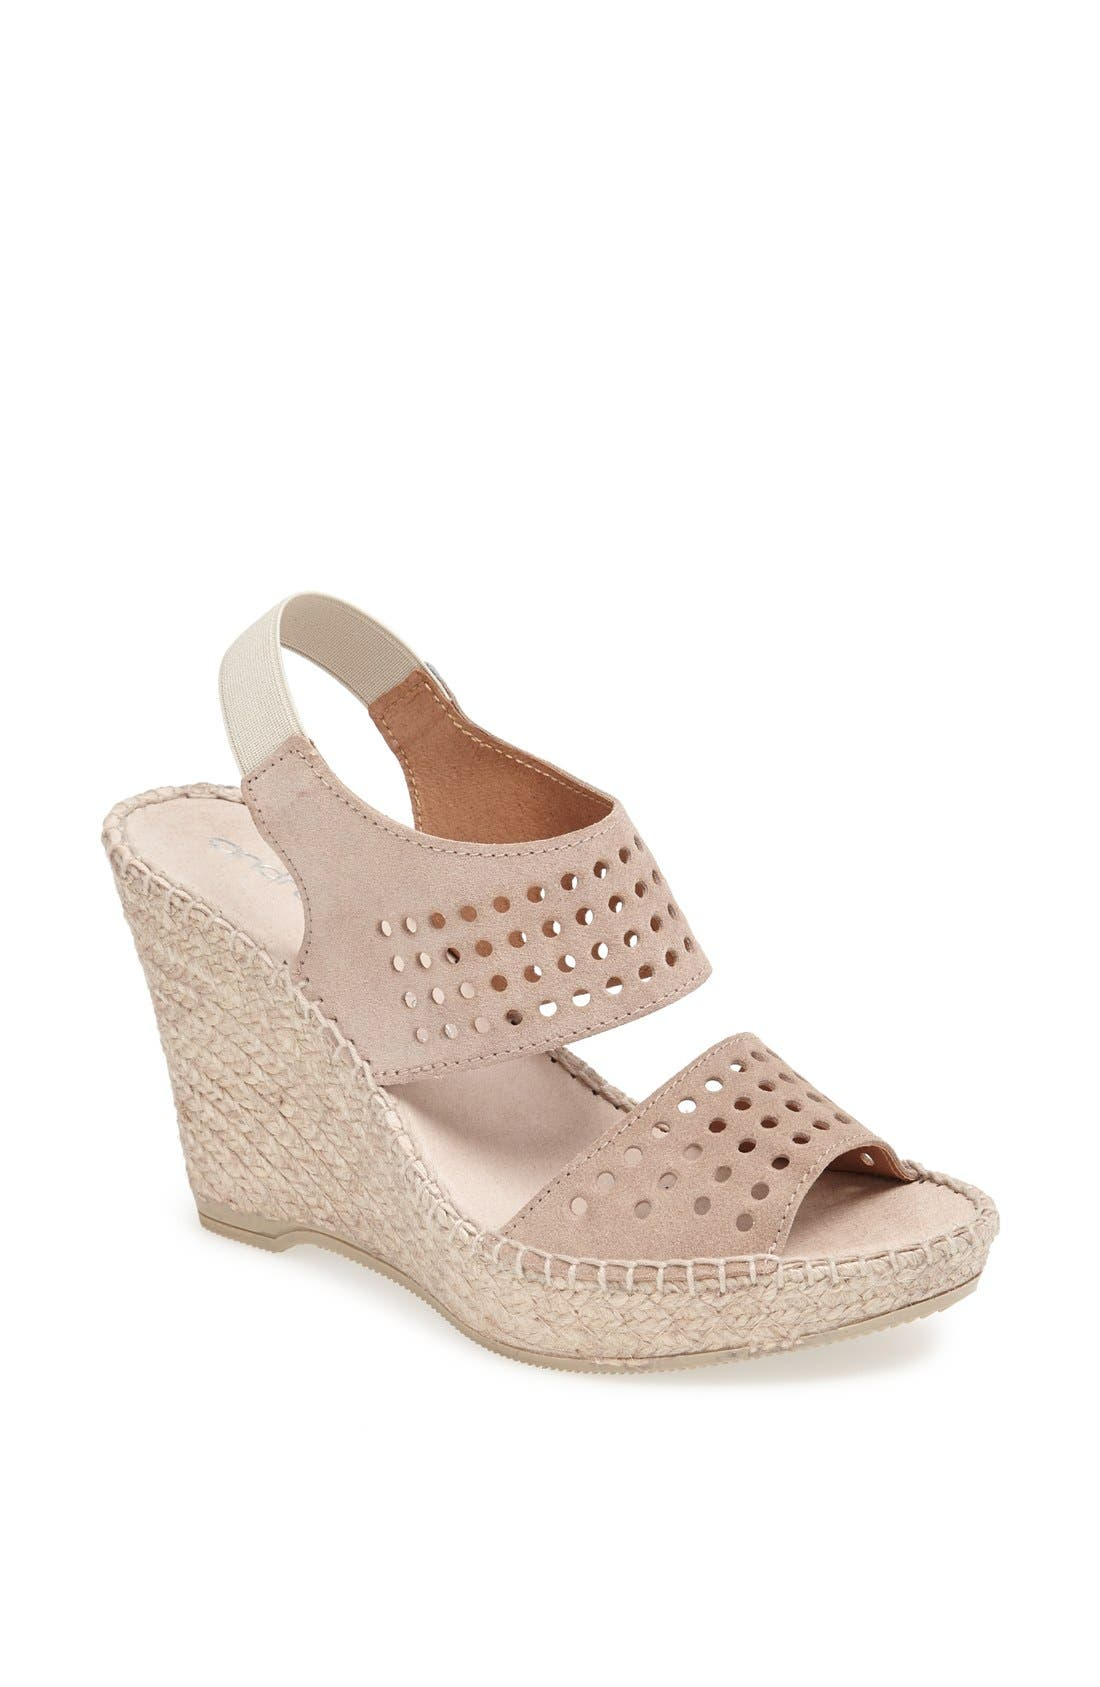 Alternate Image 1 Selected - André Assous 'Cyline' Espadrille Wedge Sandal